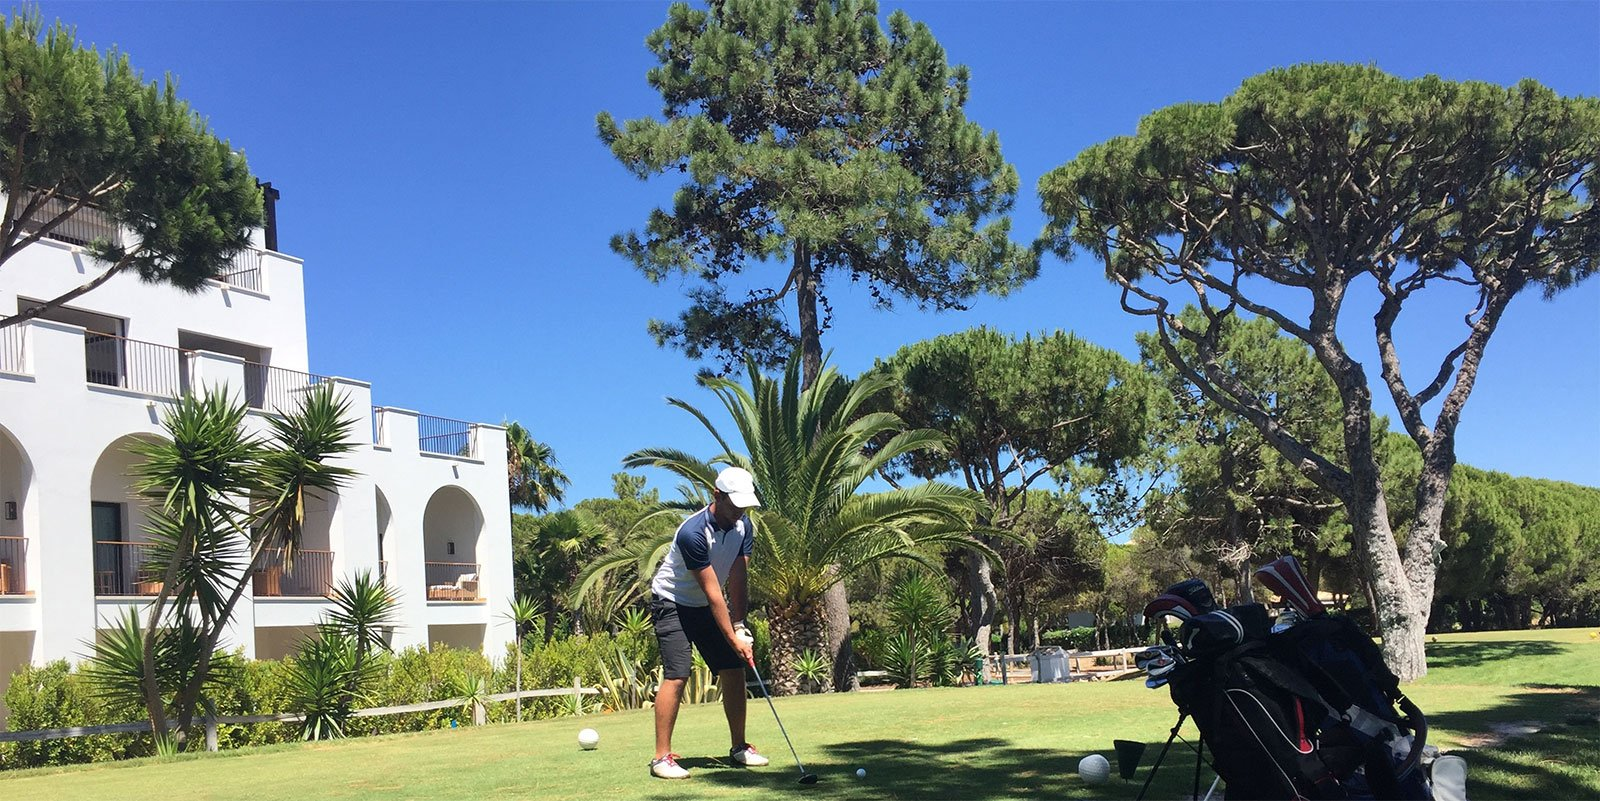 Living in Portugal is golfer's paradise